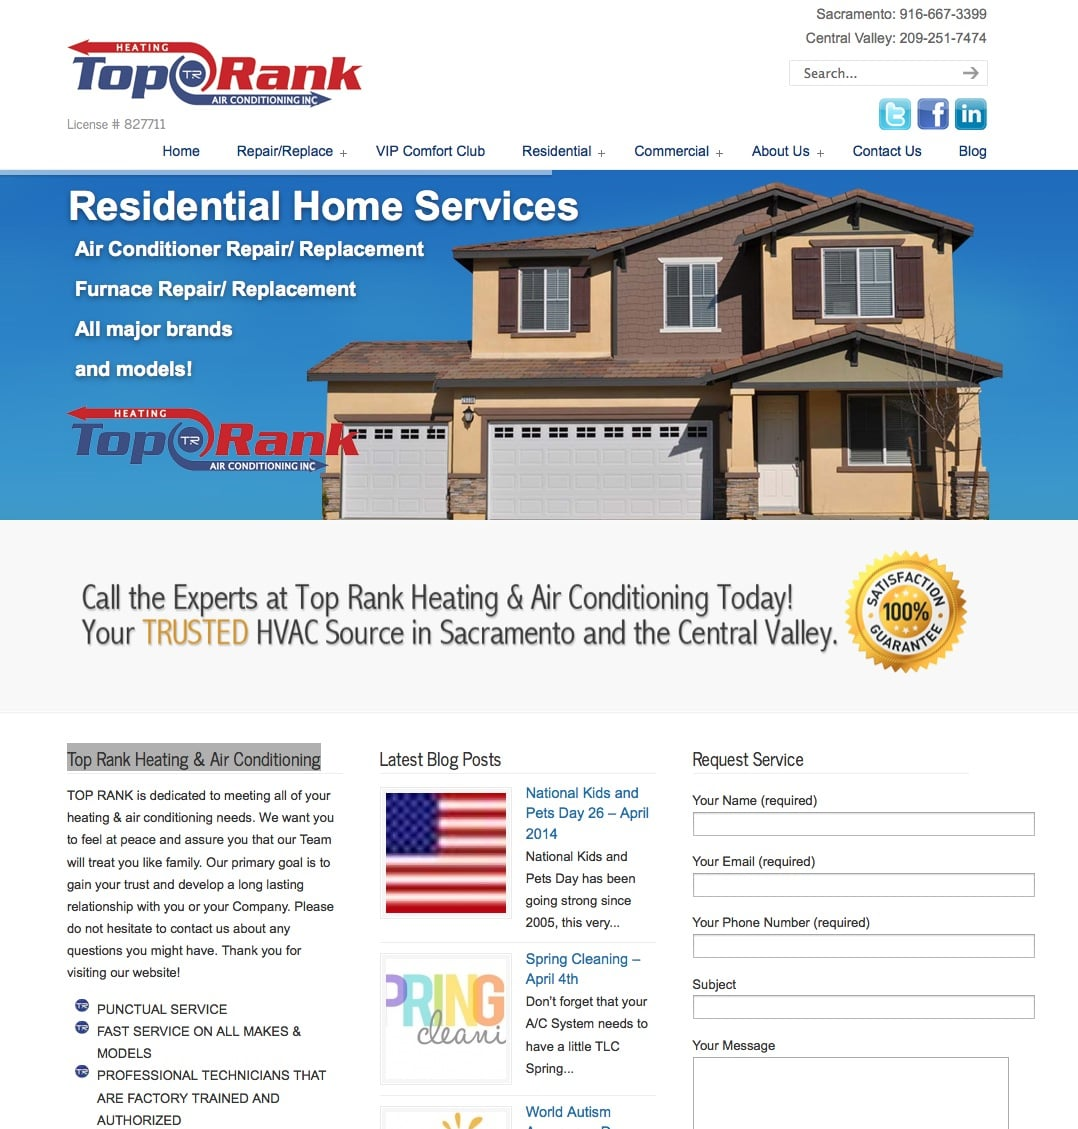 Top Rank Heating & Air Conditioning - Southern California